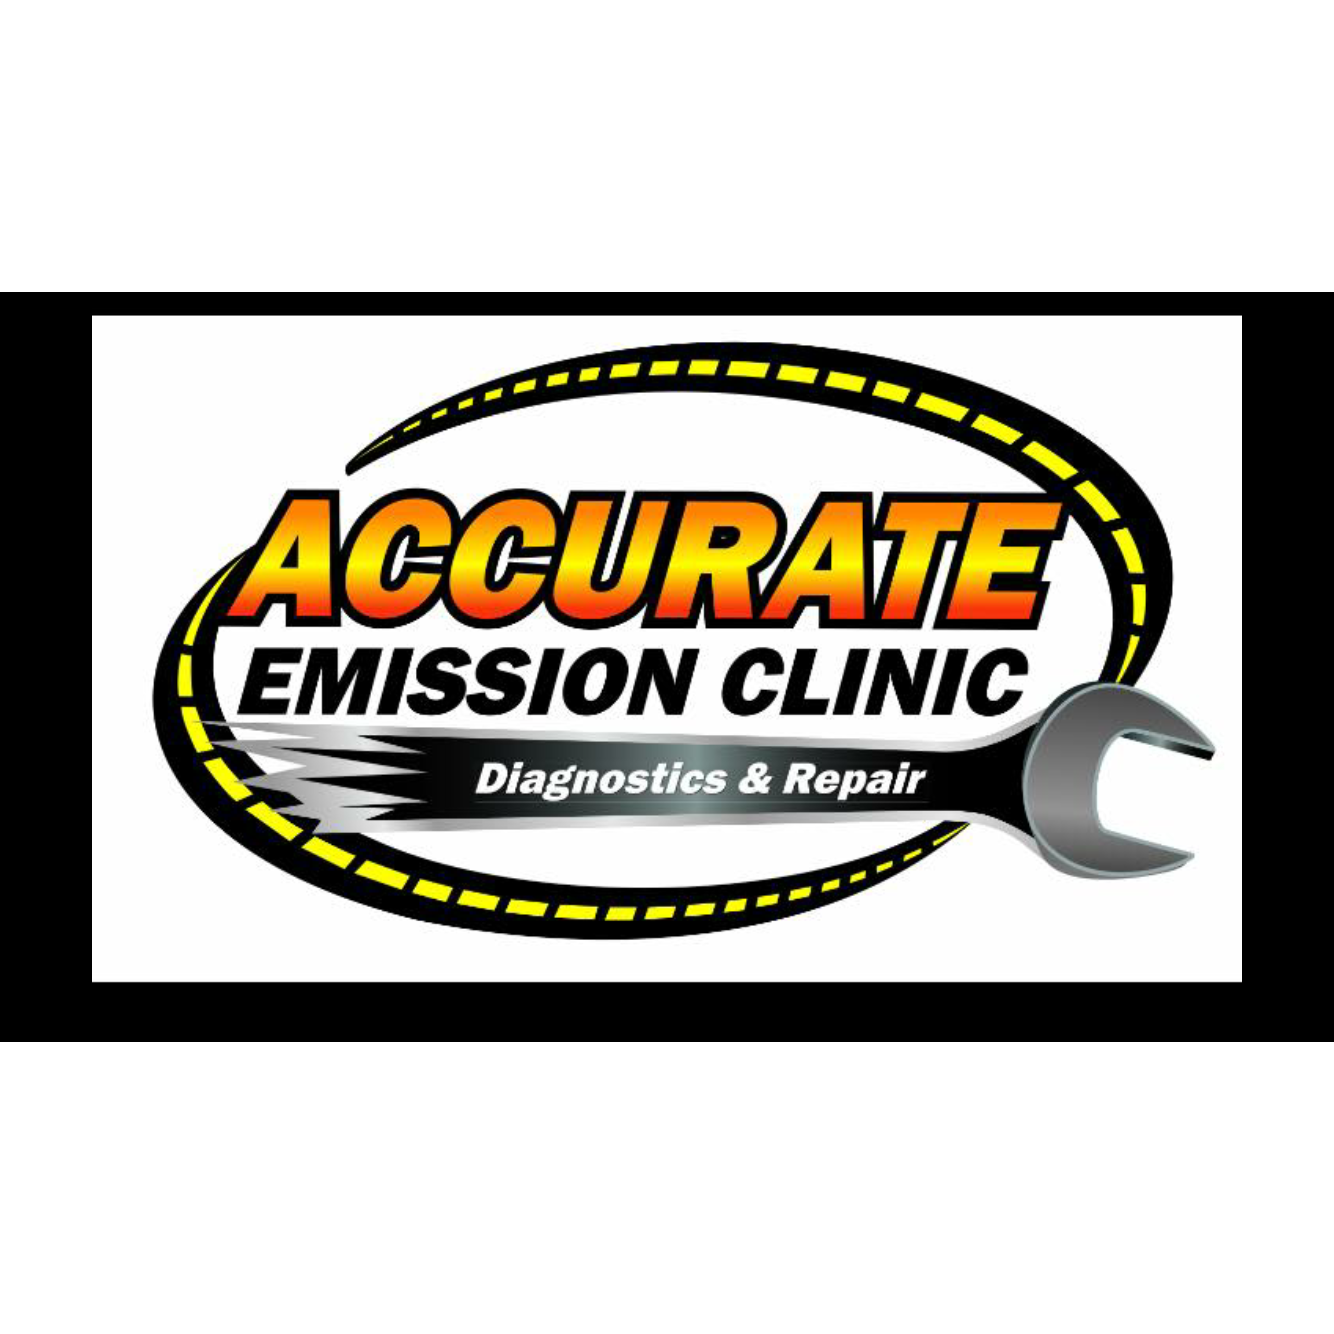 Emissions Testing Hours Of Operation in Crown Point on dasreviews.ml See reviews, photos, directions, phone numbers and more for the best Emissions Inspection Stations in Crown Point, IN. Start your search by typing in the business name below.